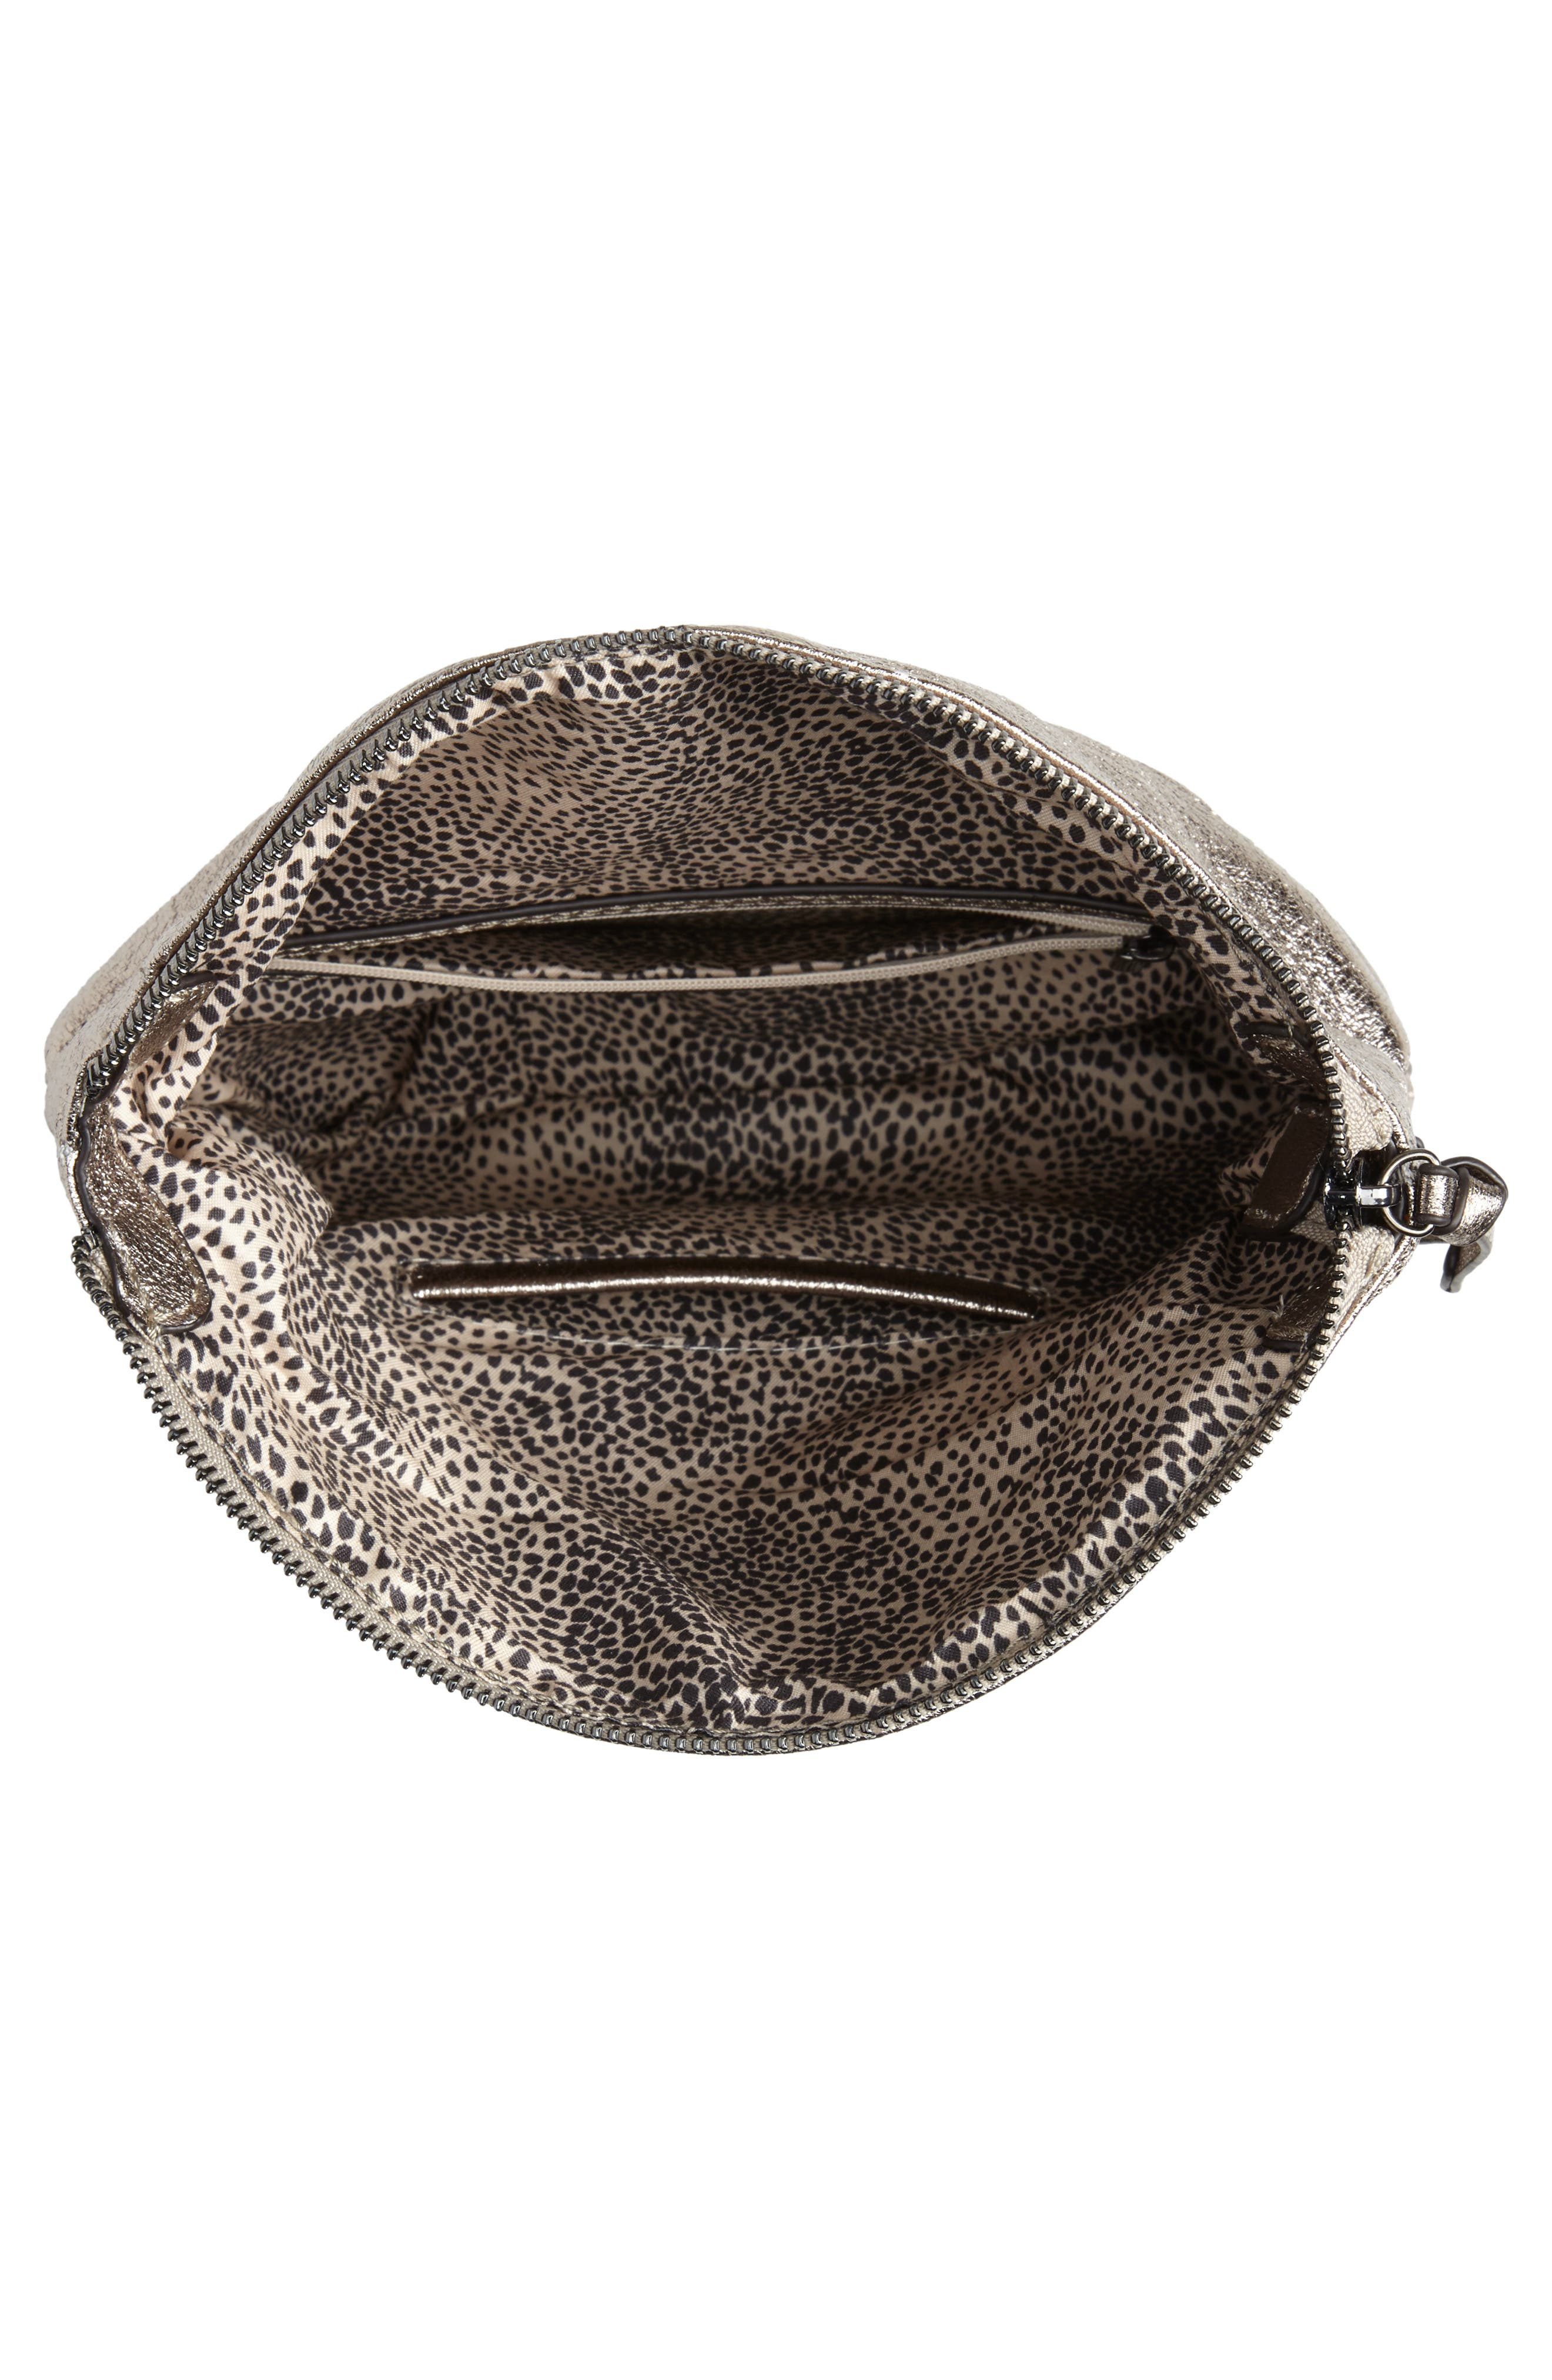 Missa Metallic Clutch,                             Alternate thumbnail 5, color,                             PEWTER